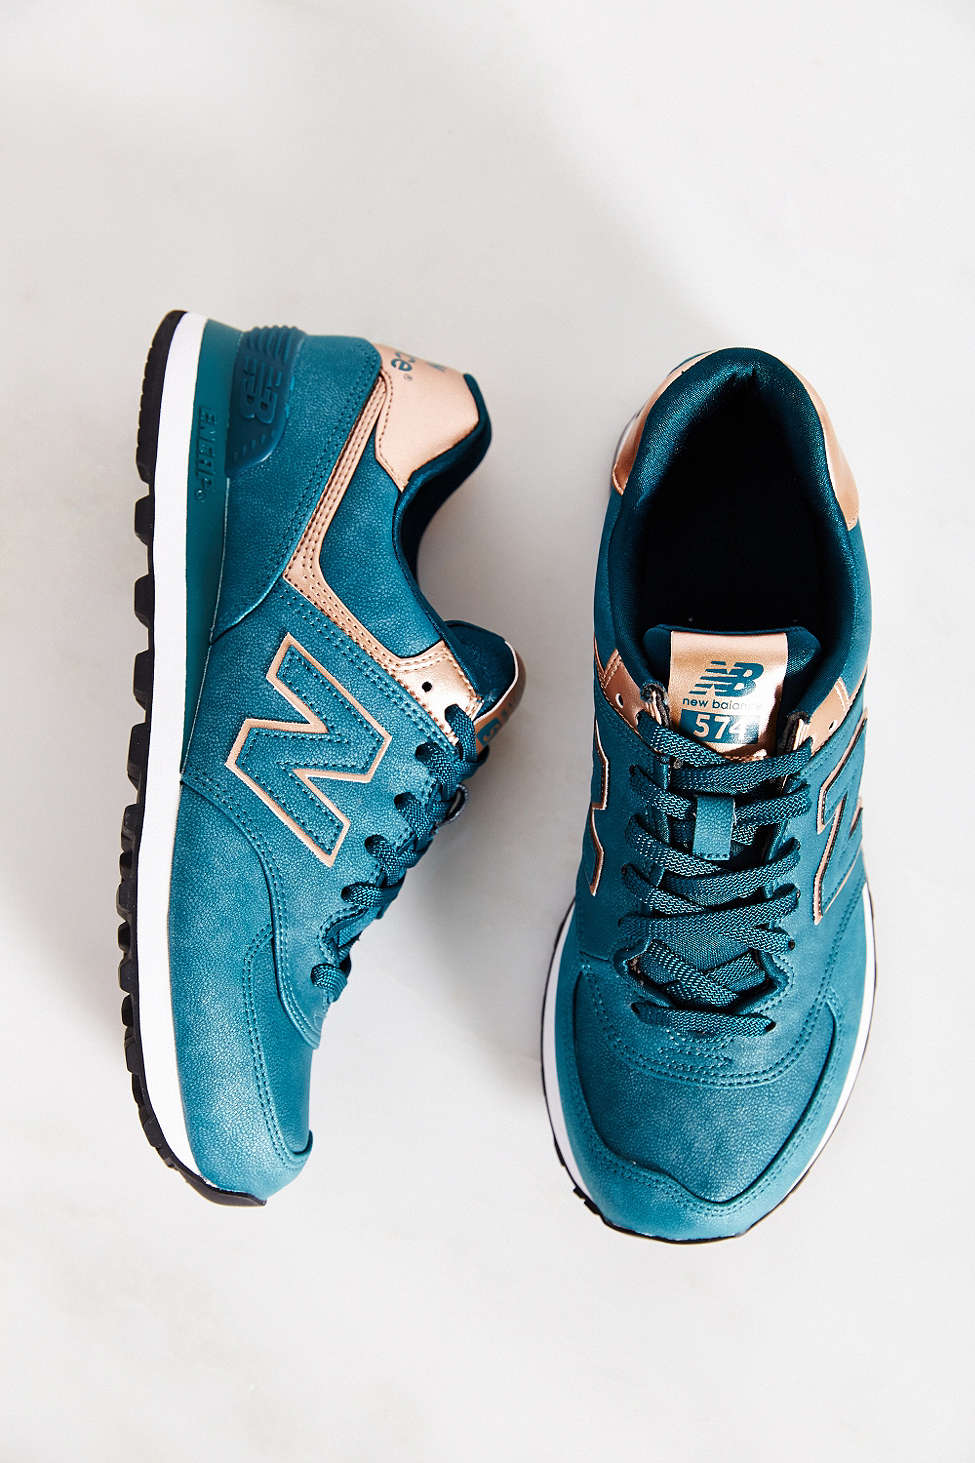 wholesale dealer 250ae 31002 Urban Outfitters 新百伦New Balance 574, 580, 620等时尚球鞋 ...